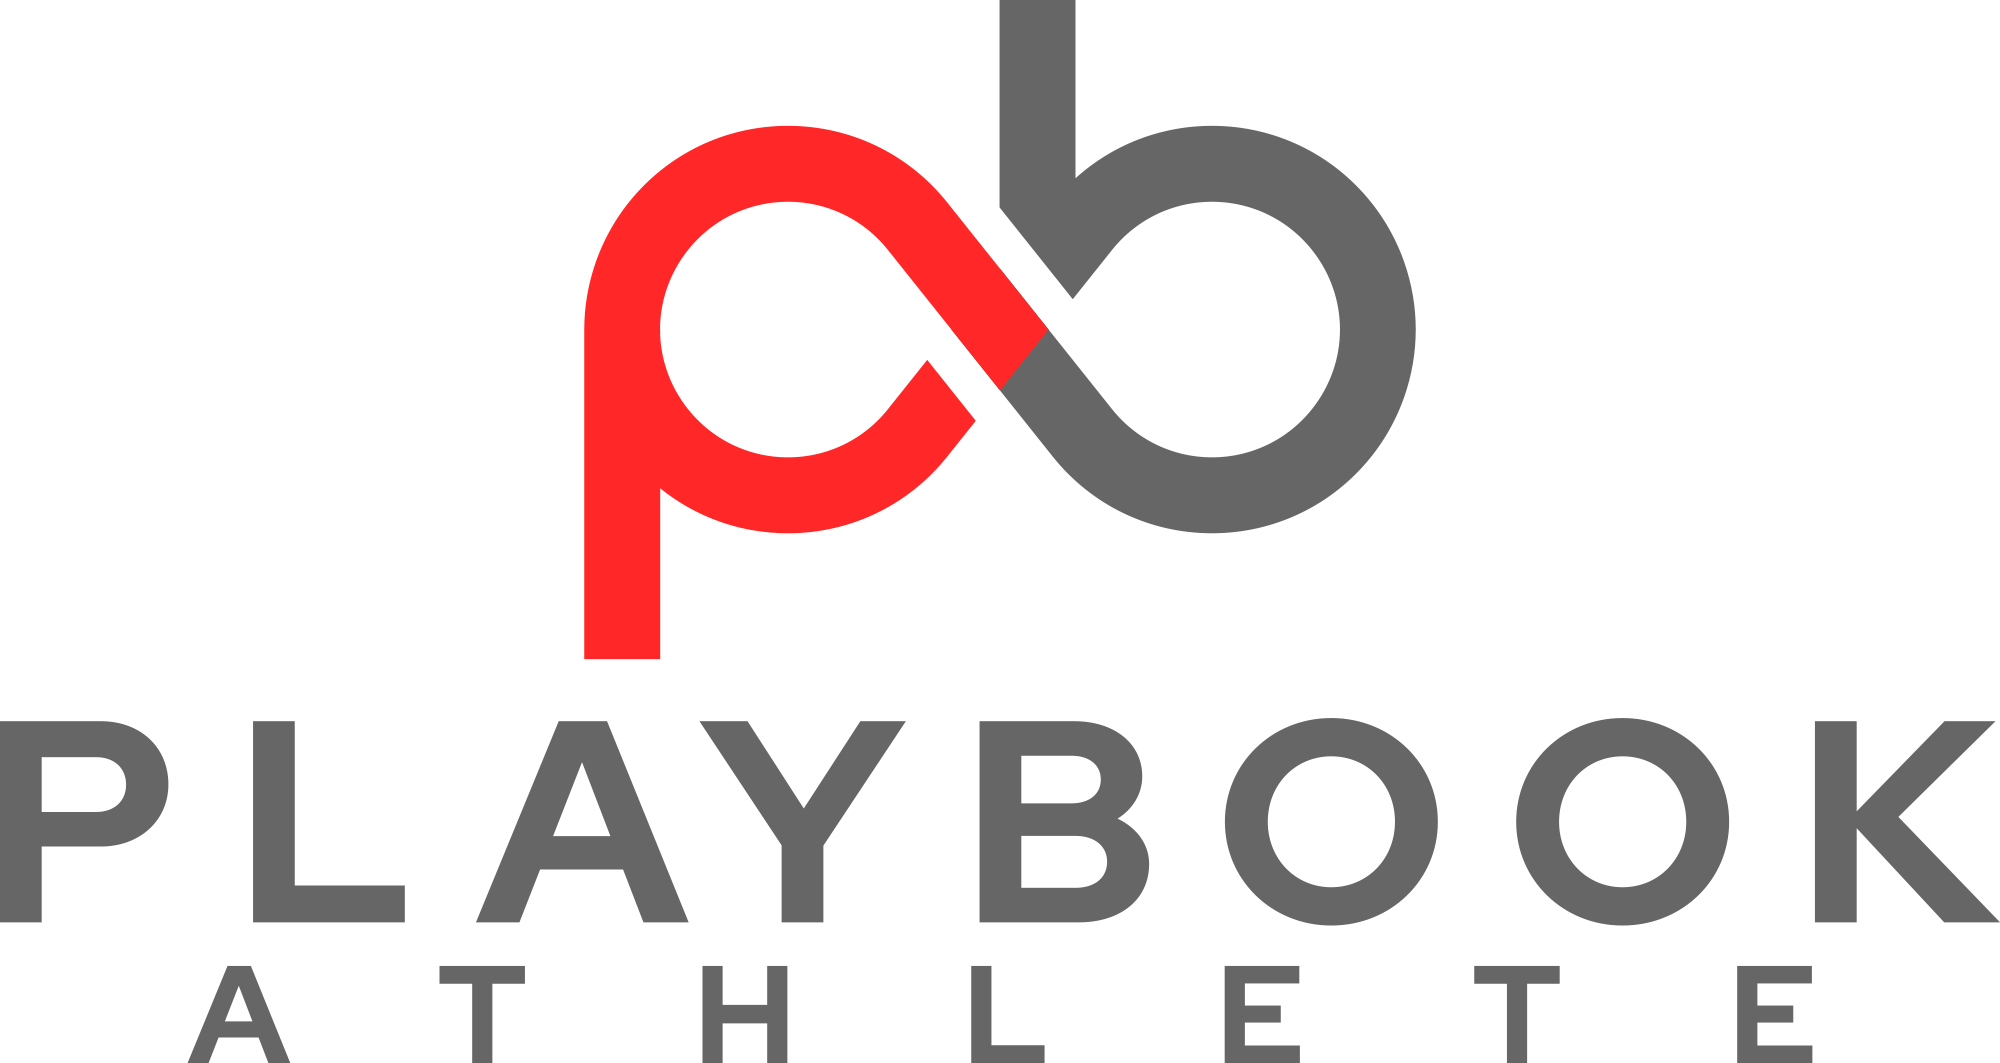 Playbook Athlete